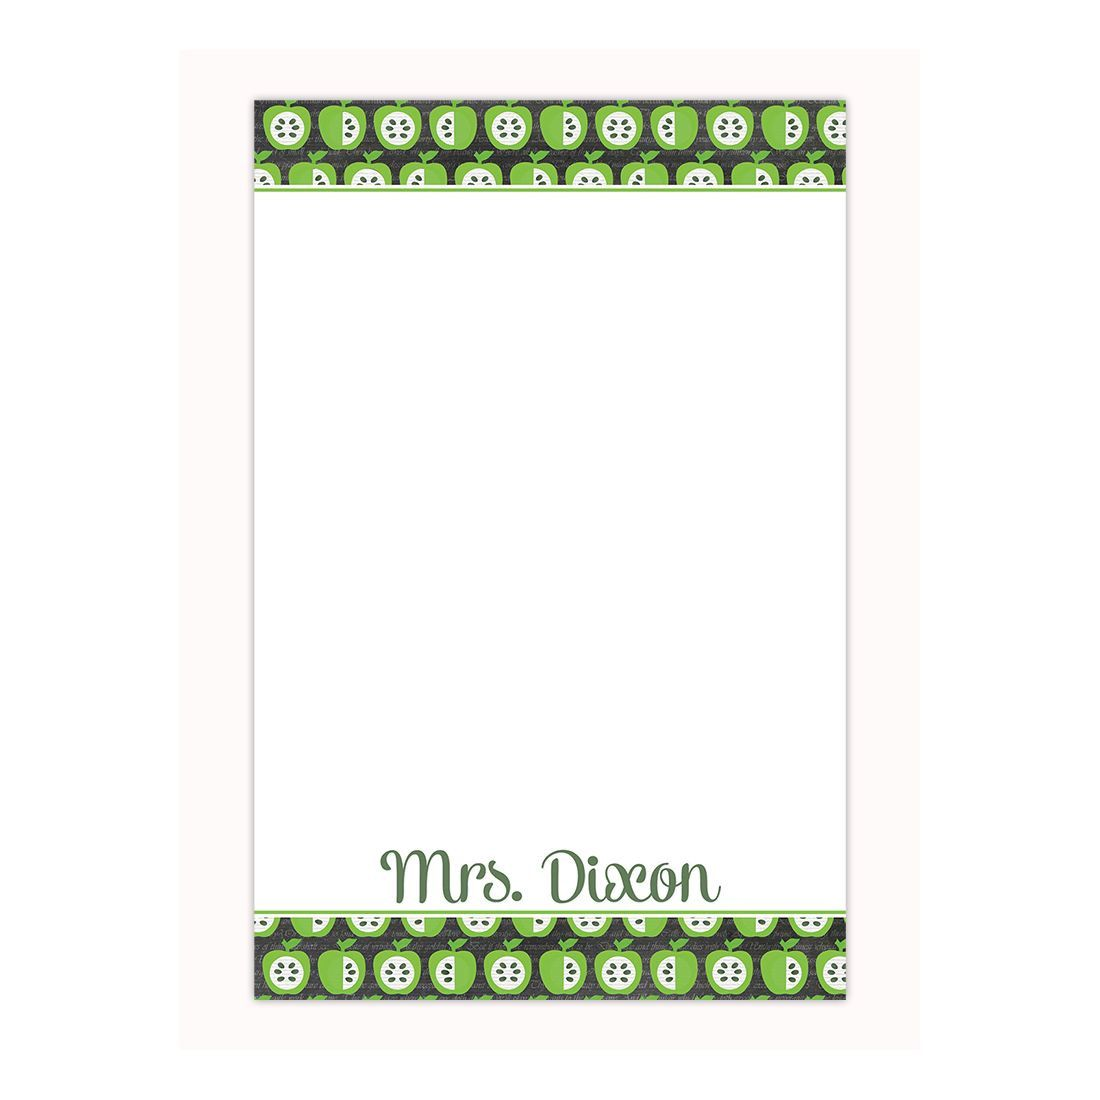 Personalized notepad in apple print, custom notepad, memo pad, office gift, gift for her, gifts under 20, coworker gift by PaperKStudios on Etsy